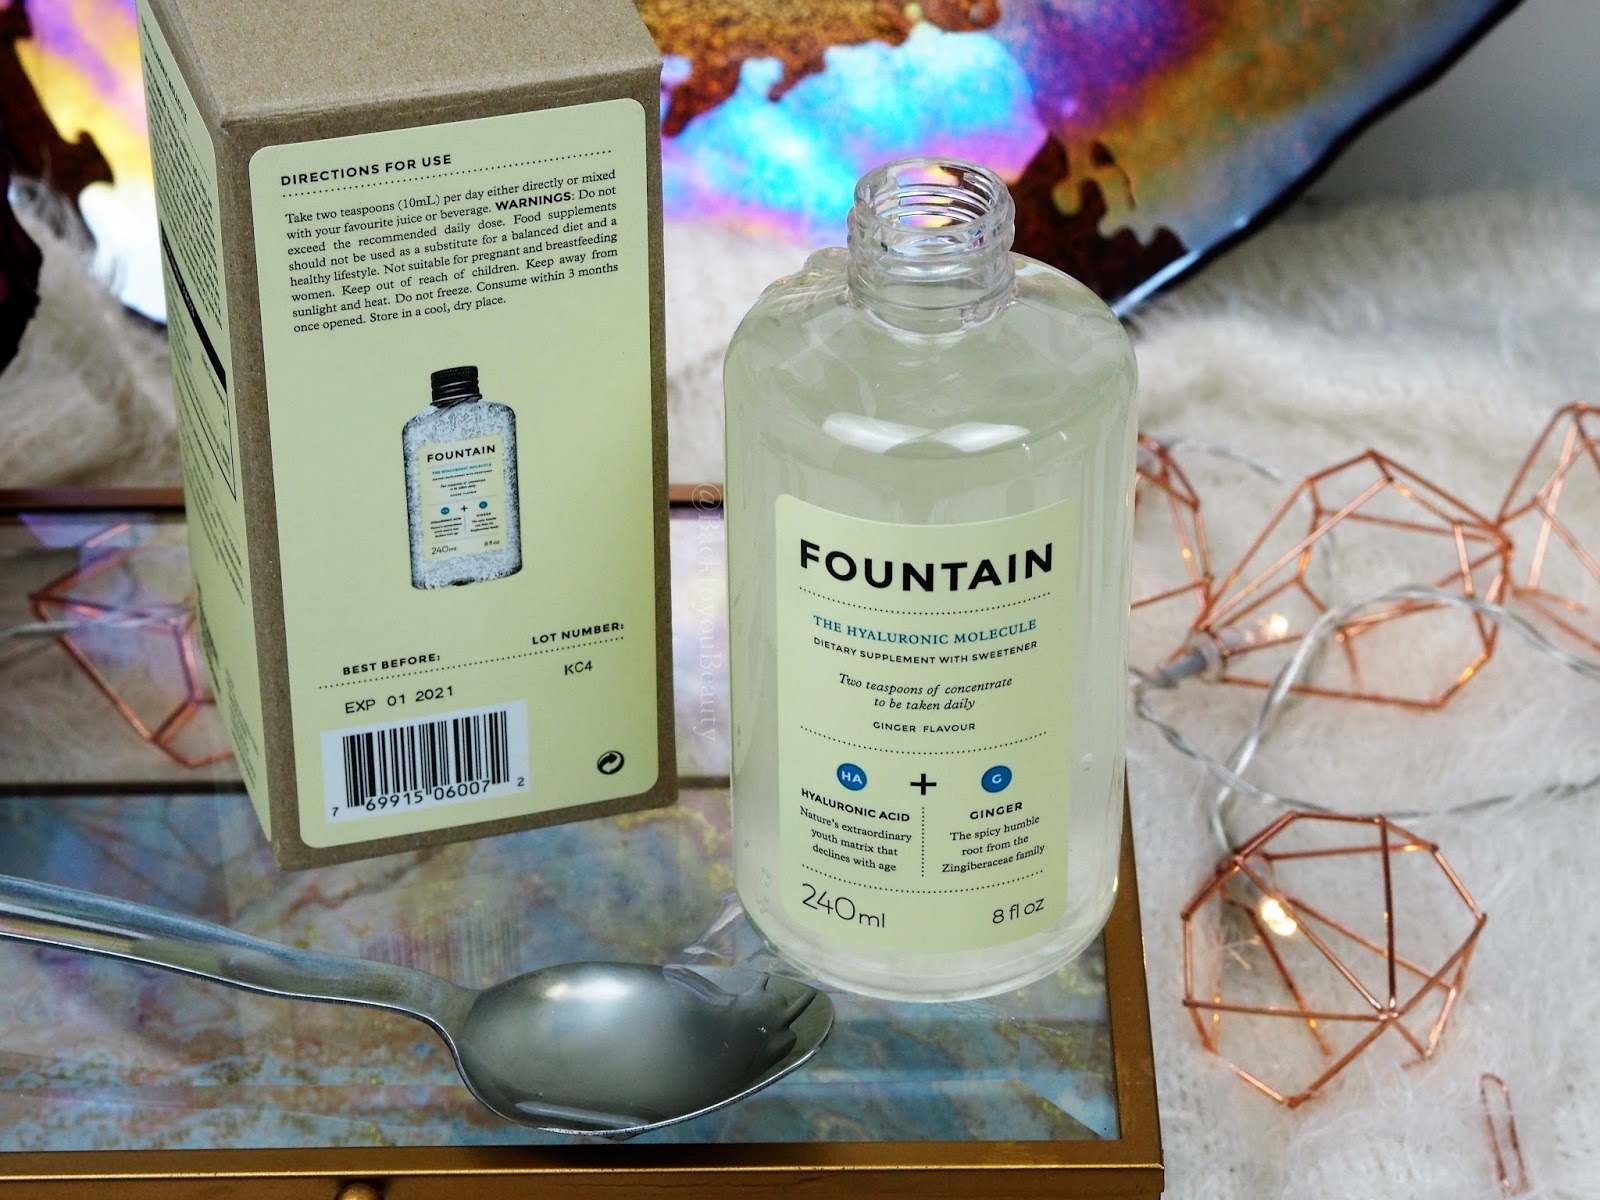 The Hyaluronic Molecule from FOUNTAIN